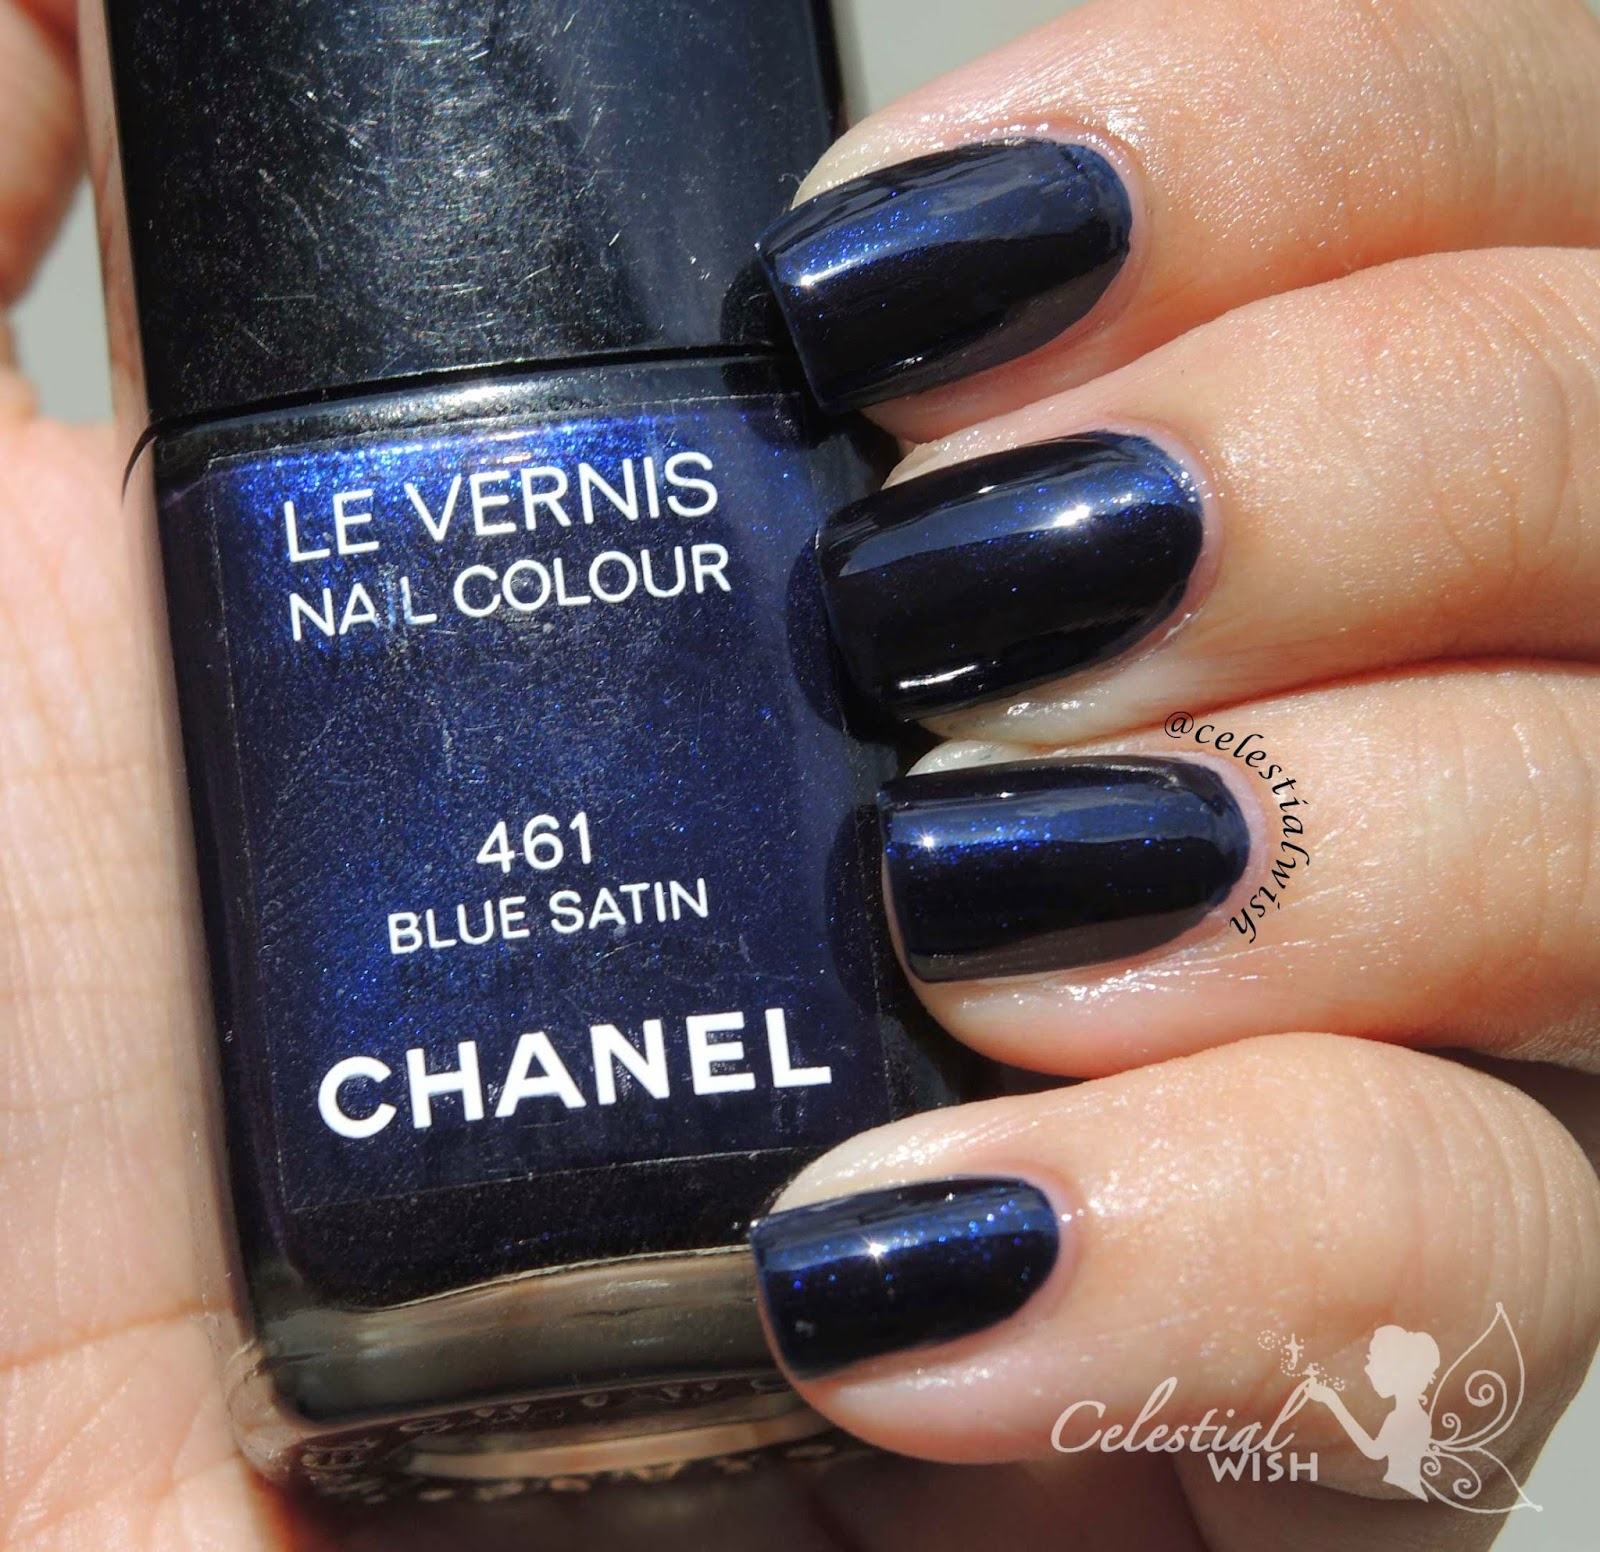 Chanel #461 Blue Satin